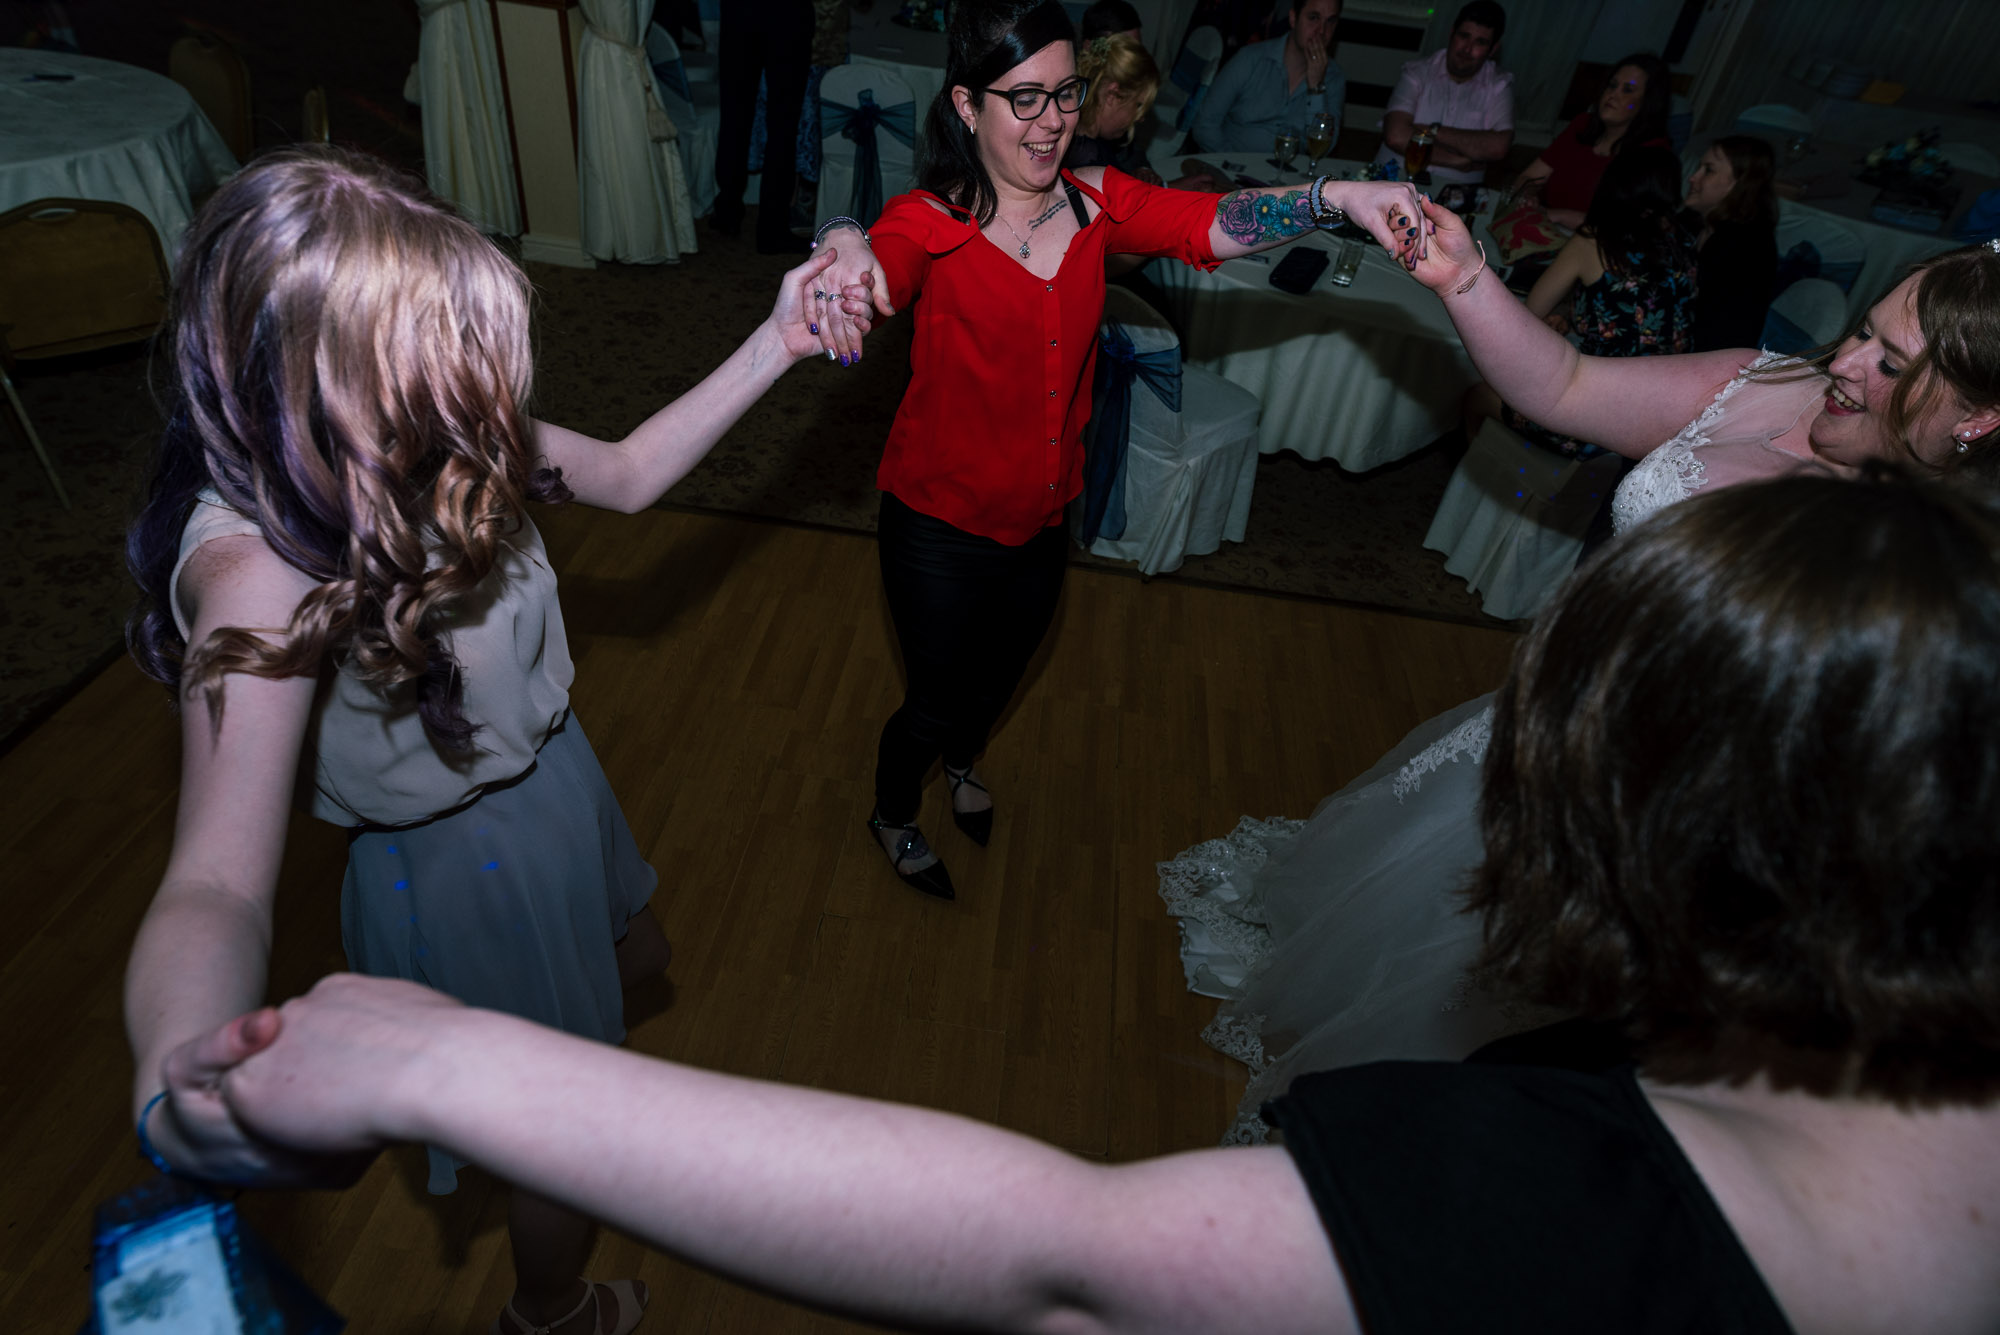 Guests dance with the bride